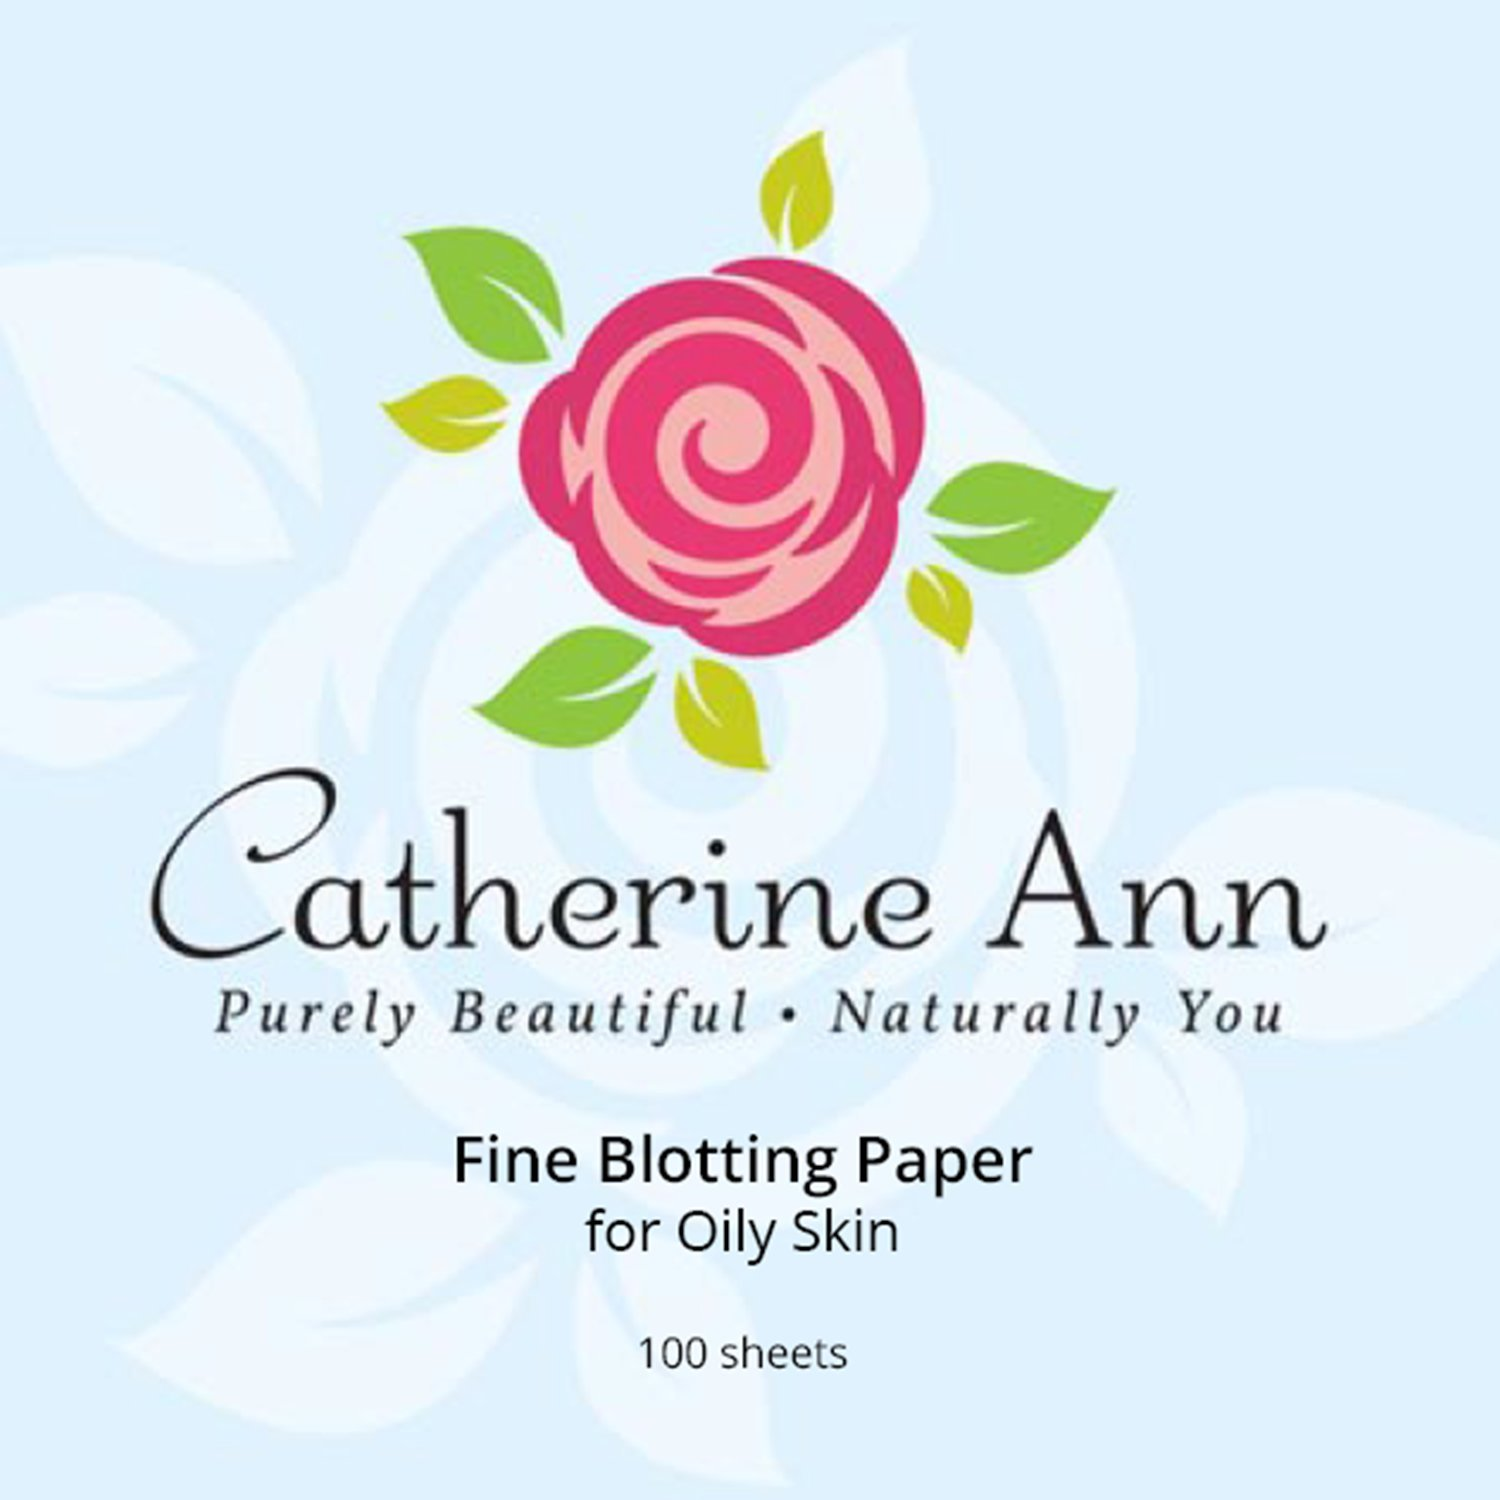 Fine Blotting Paper for Oily Skin (200 Sheets) Qs-MDix